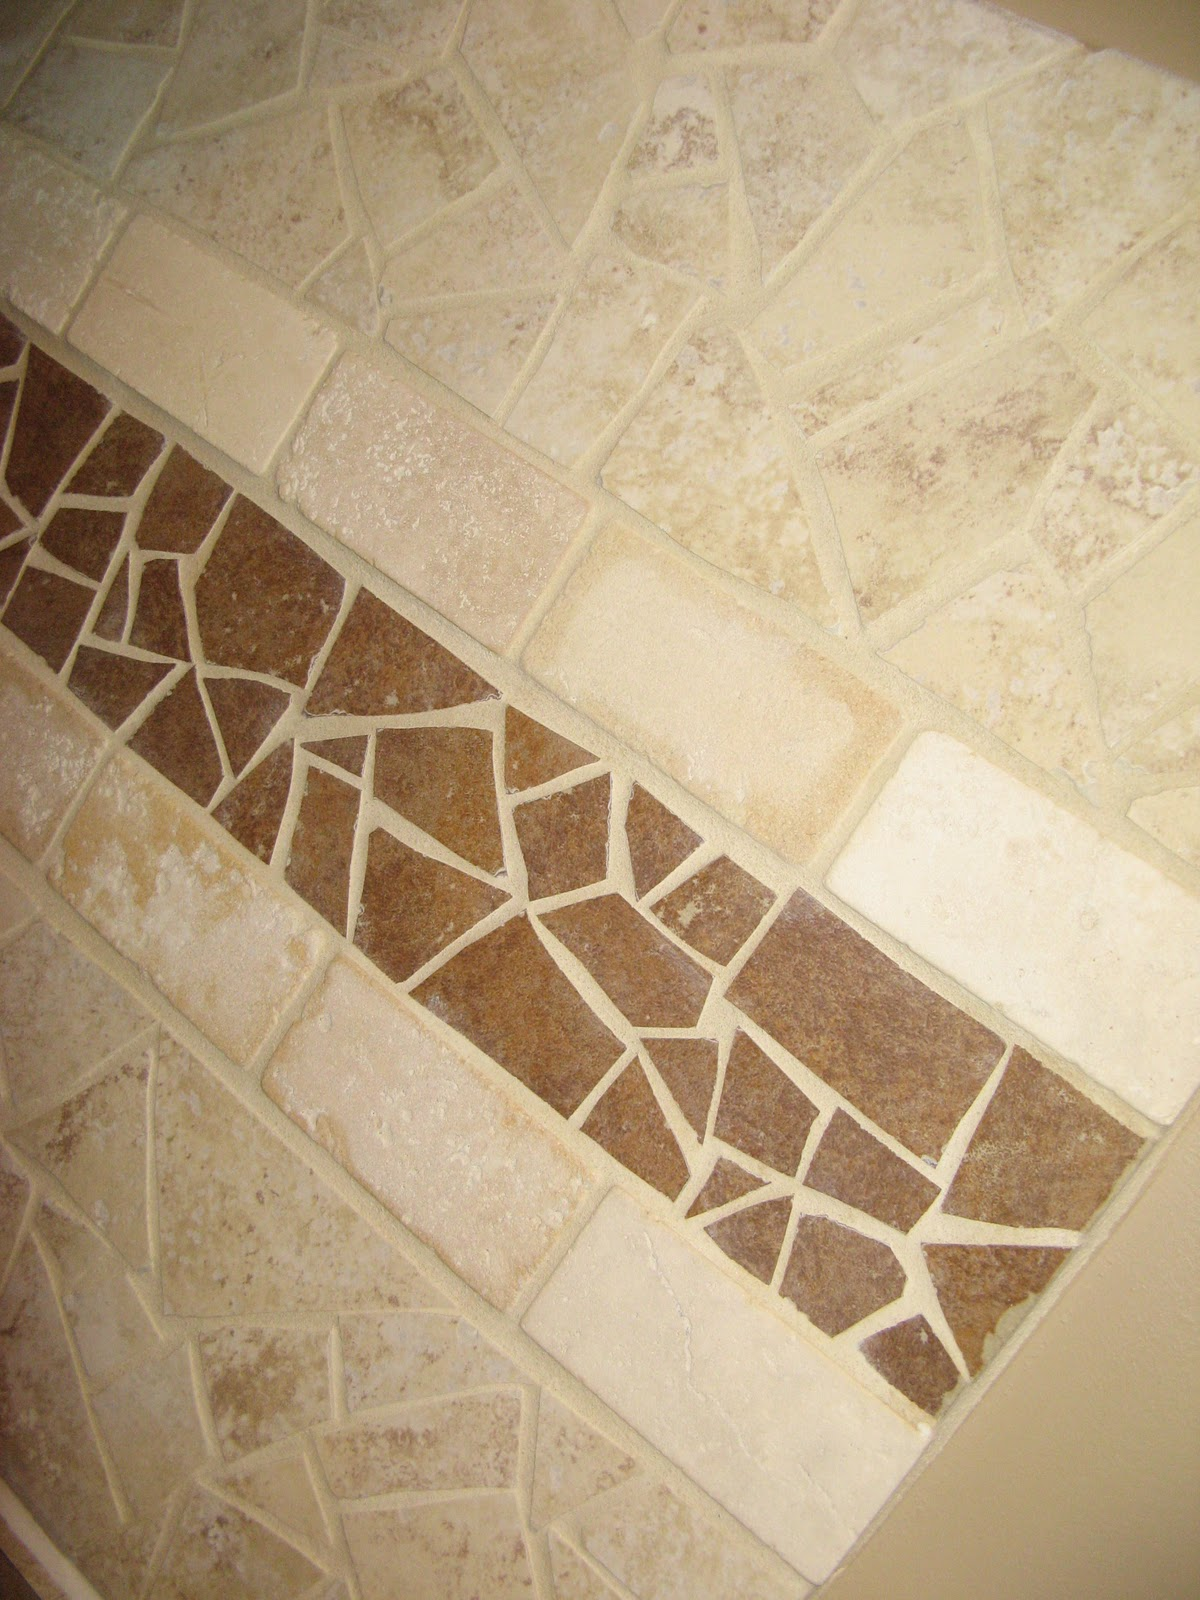 Susan Snyder Mosaic Backsplash